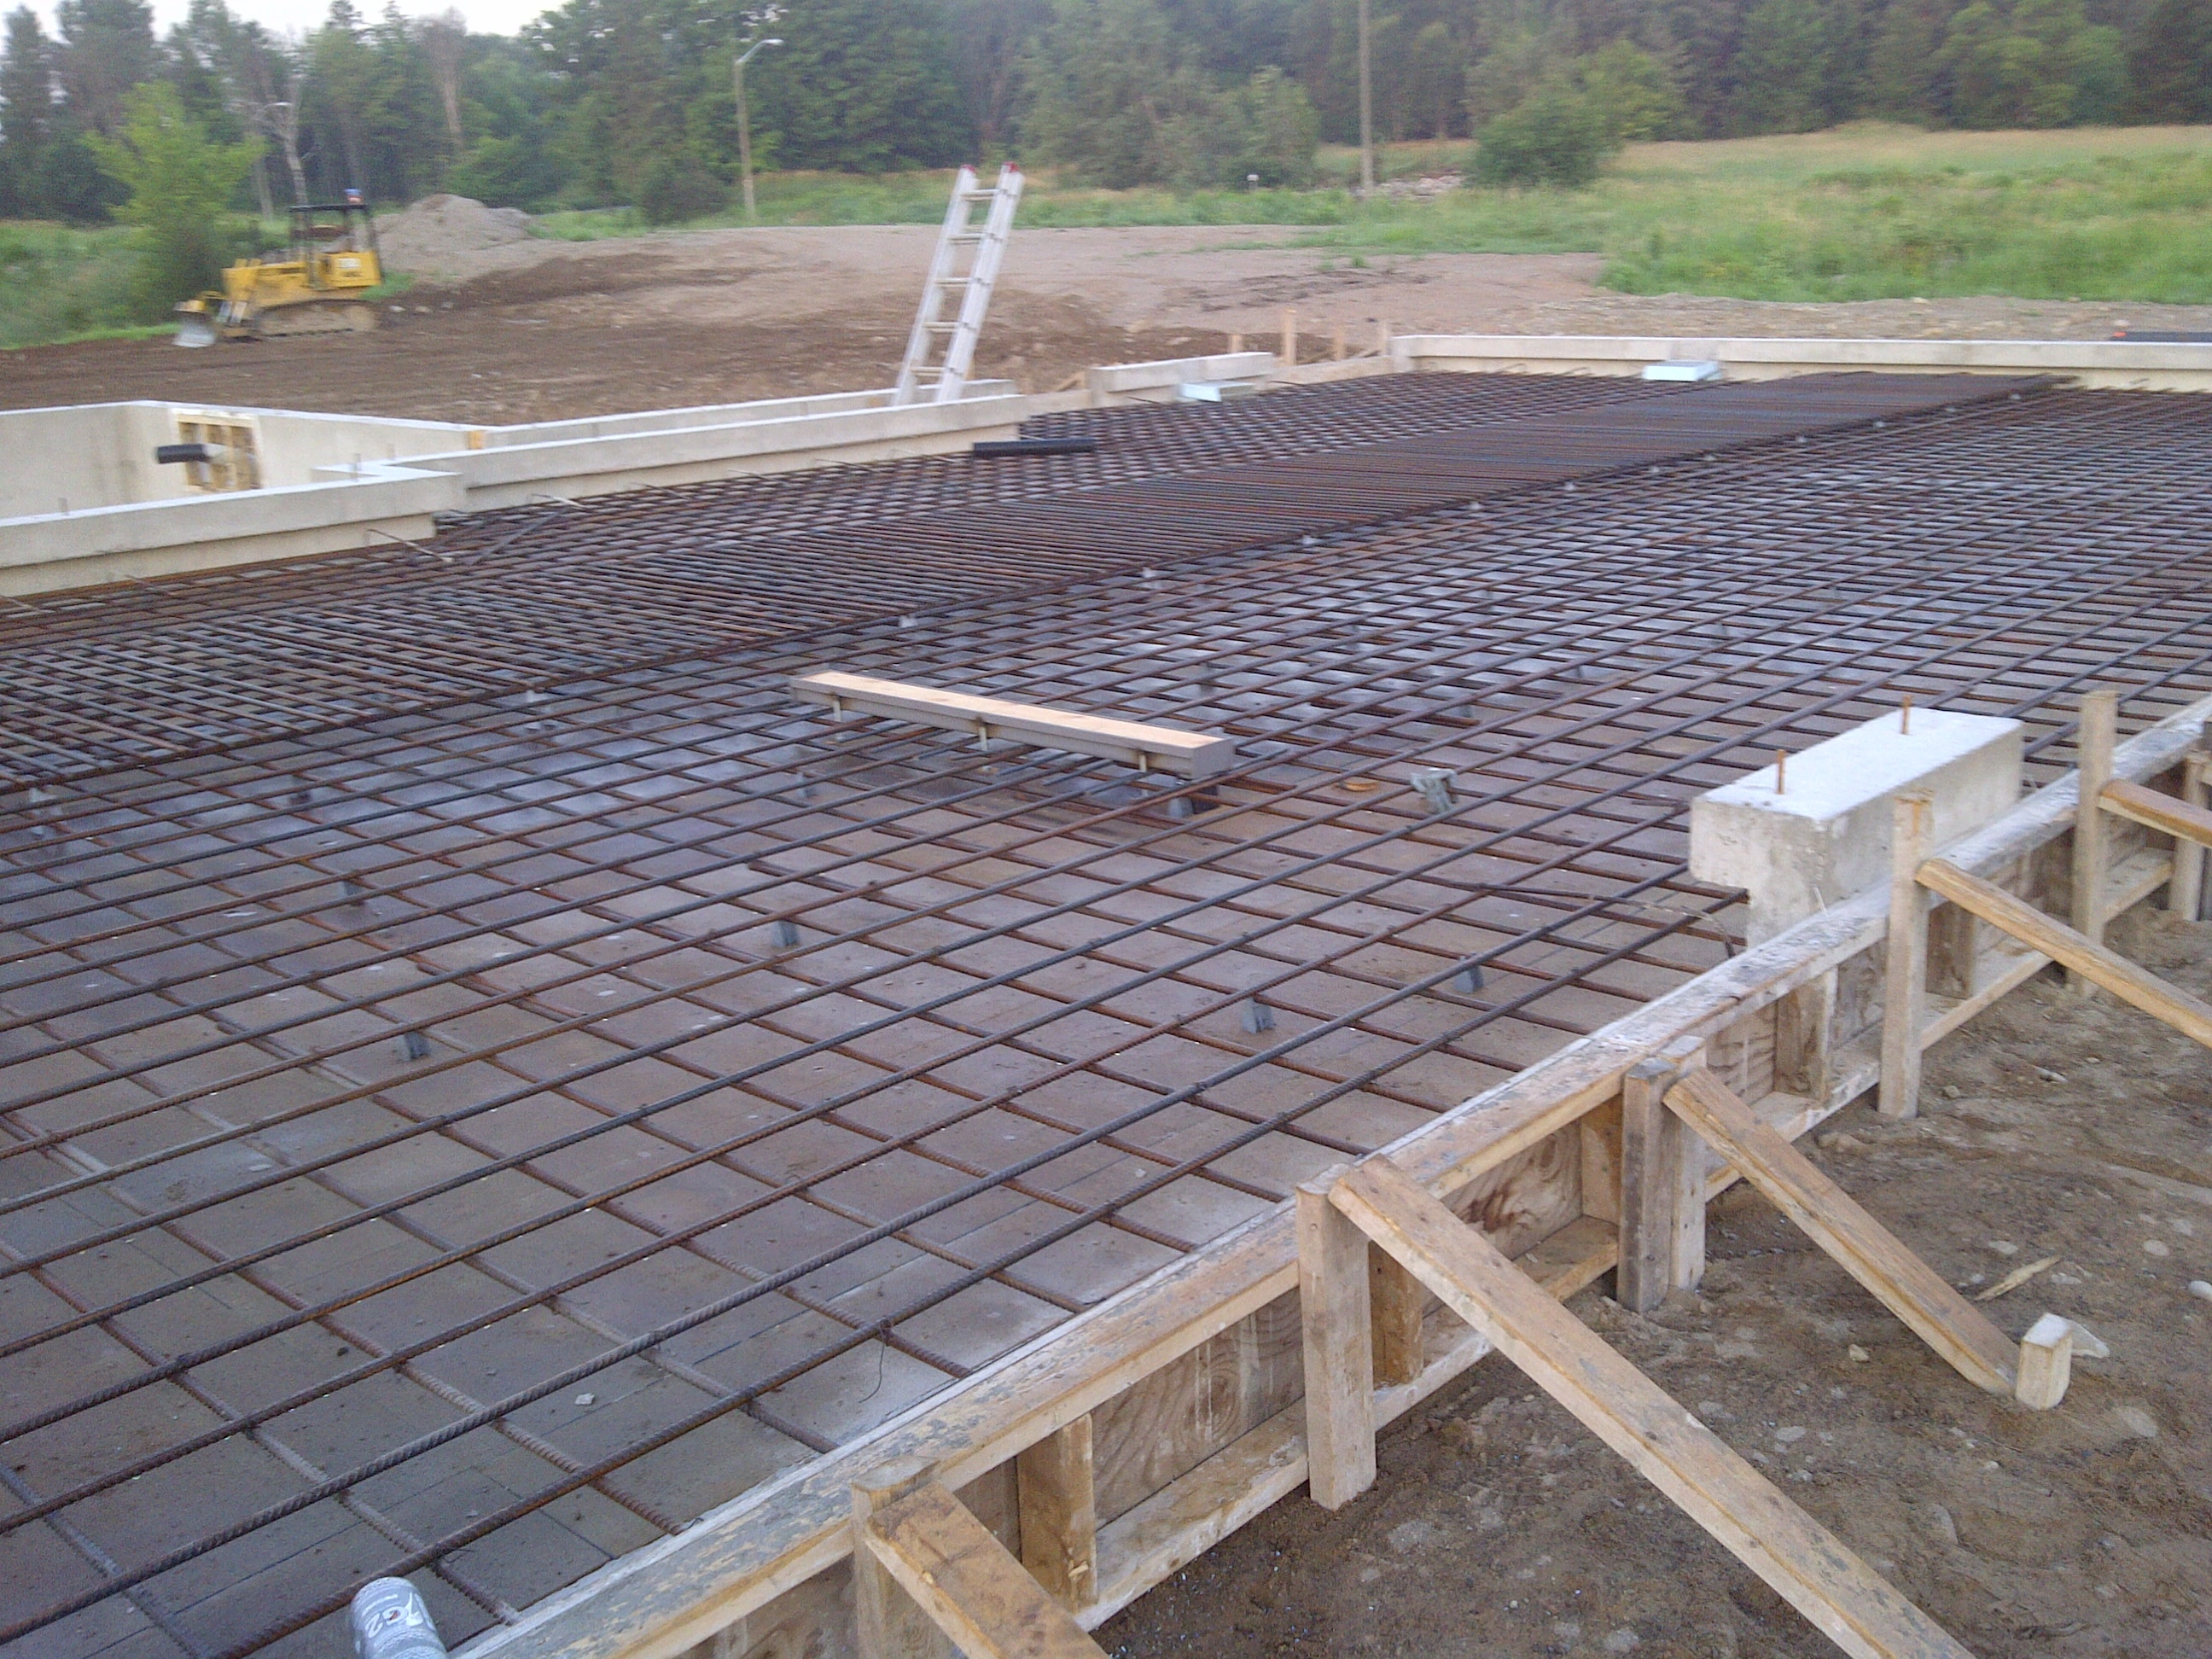 Hiring a Company to Raise a Concrete Slab